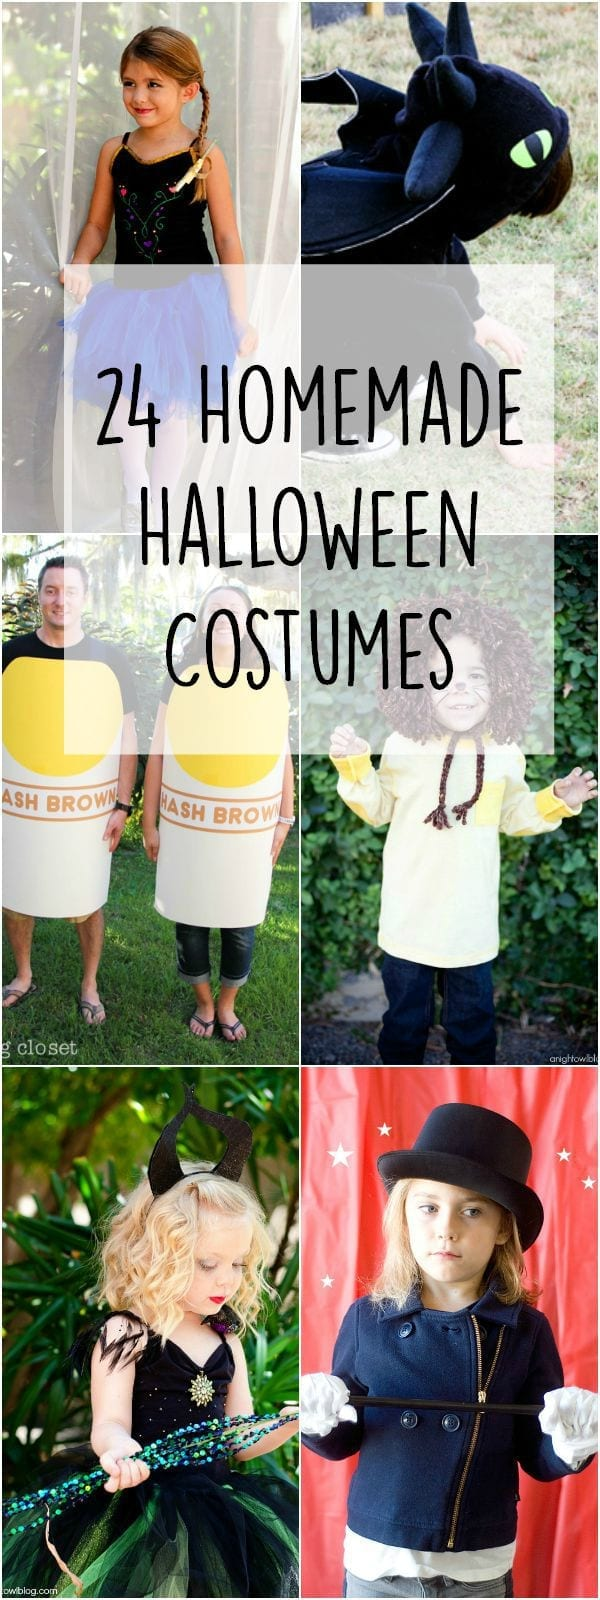 24 homemade Halloween costumes